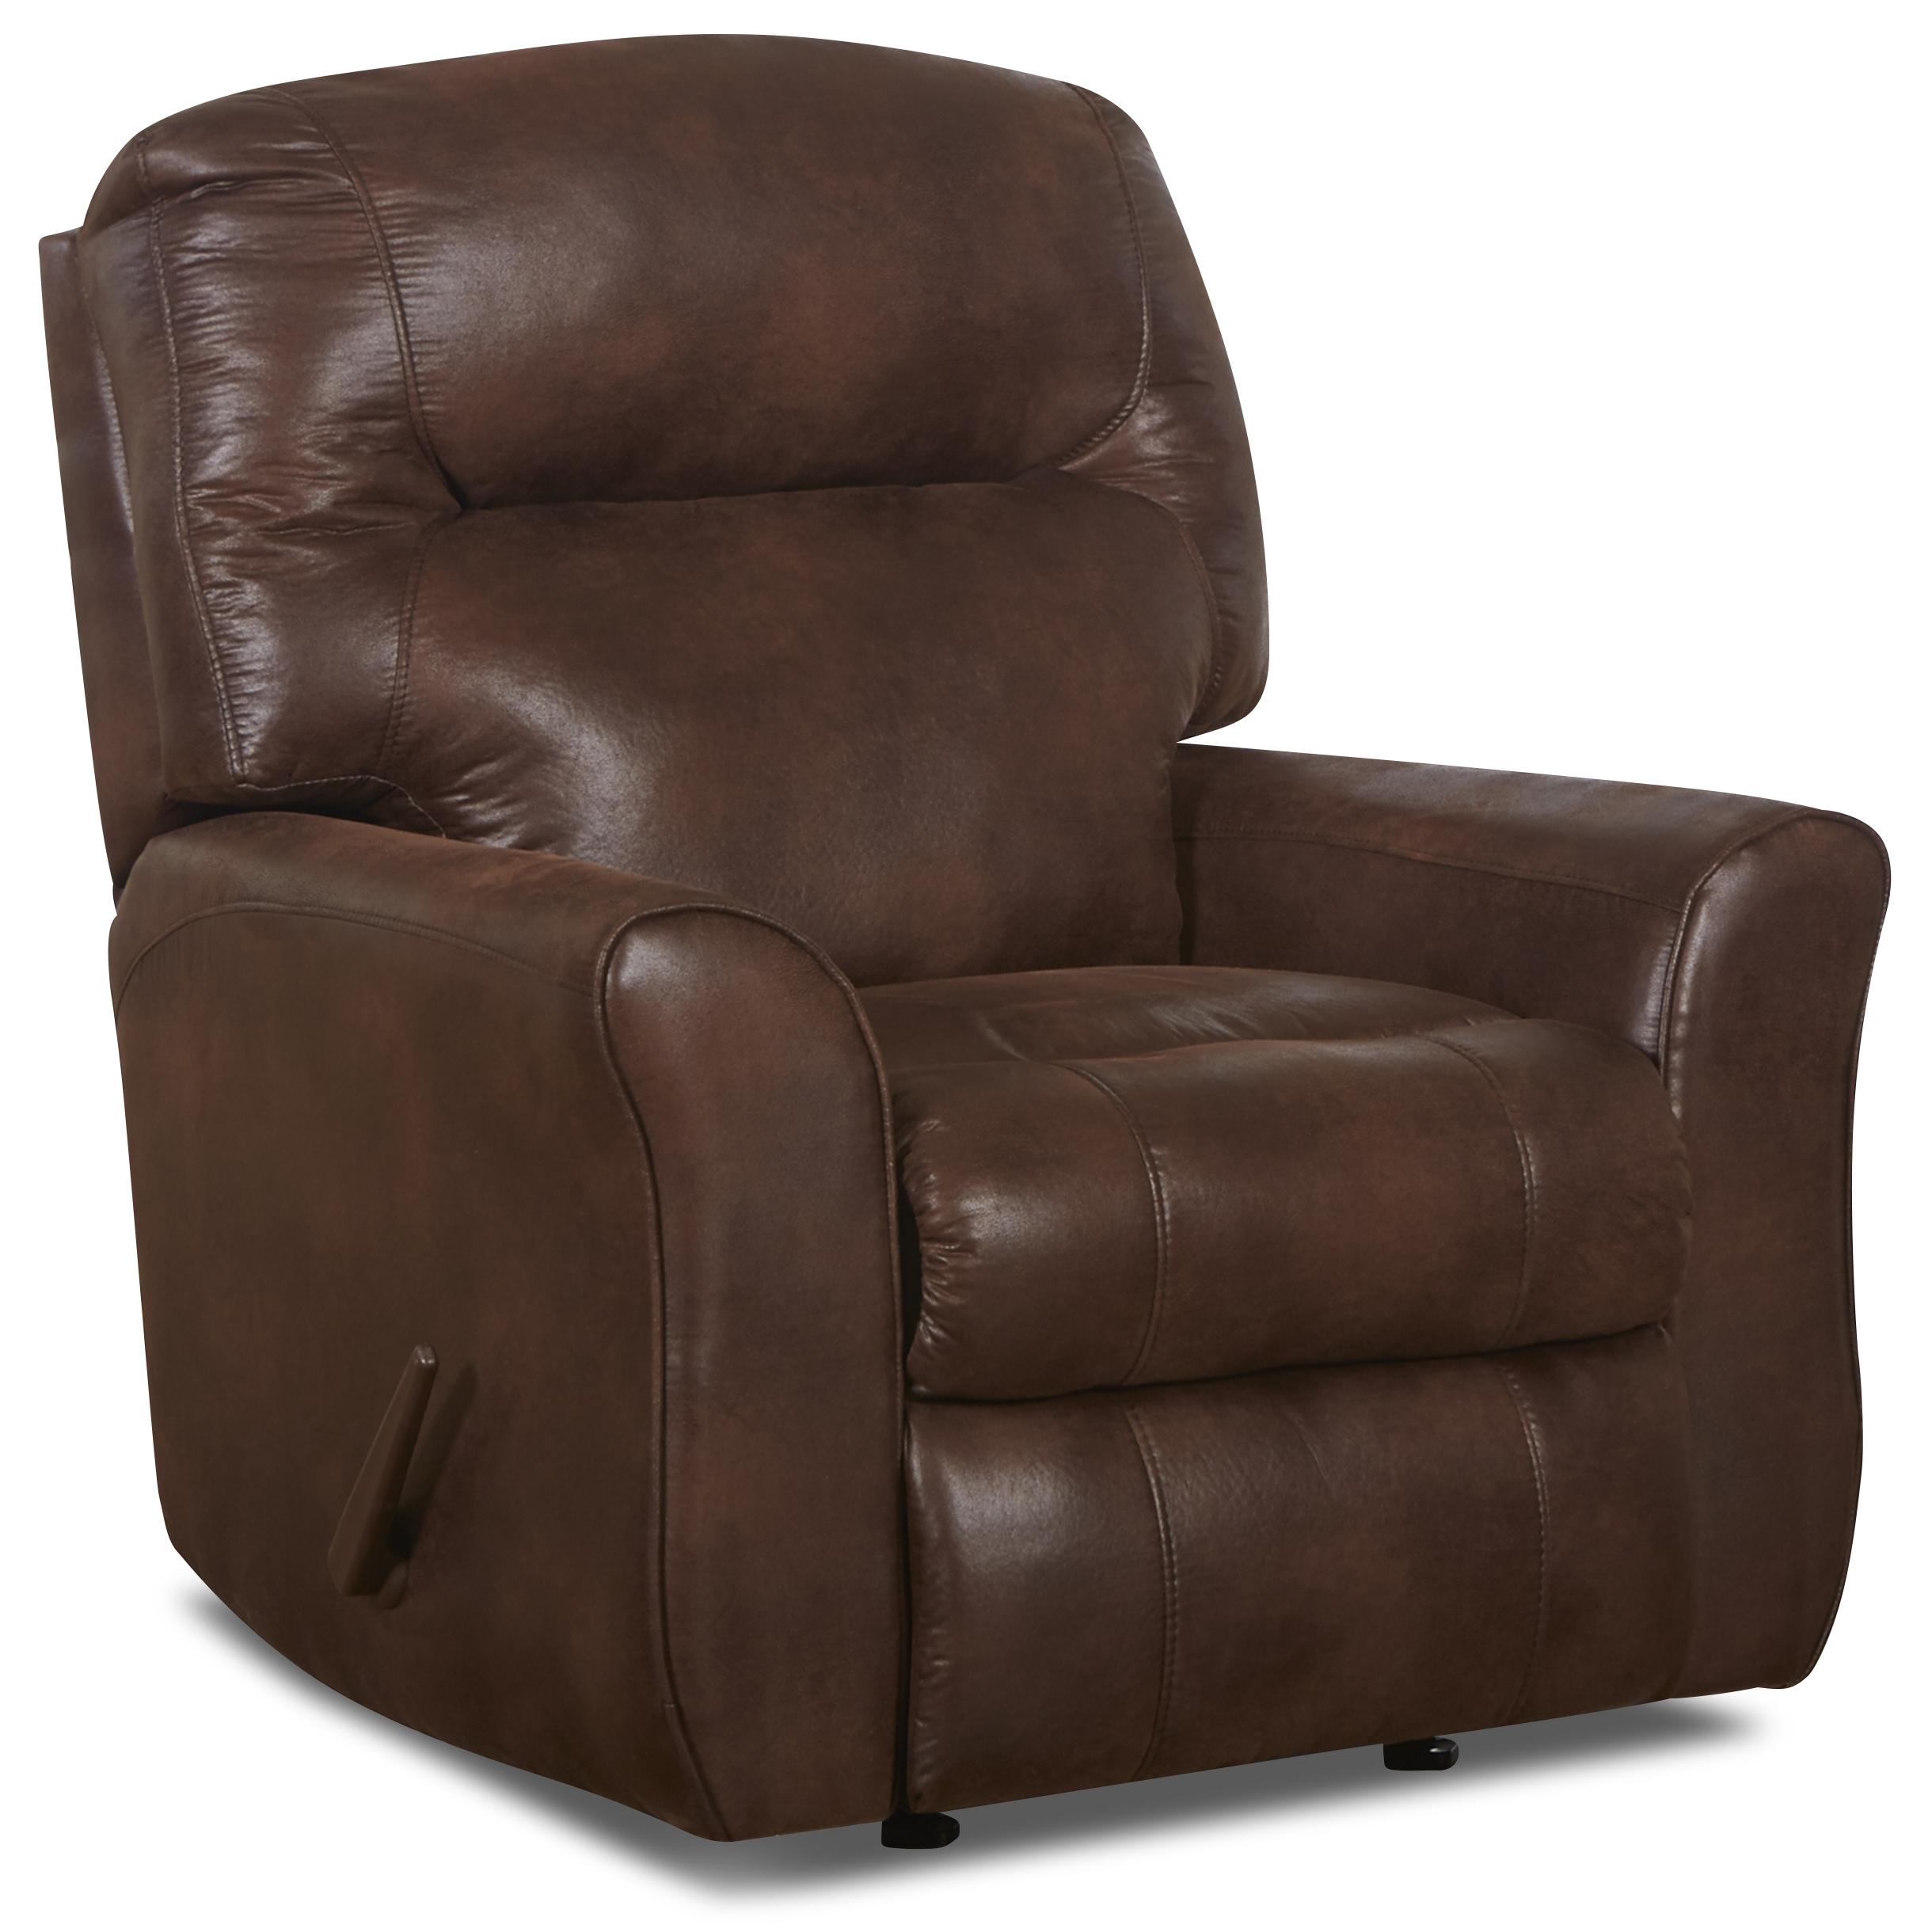 Casual Reclining Chair with Attached Back Pillows and Outside Handle Activation